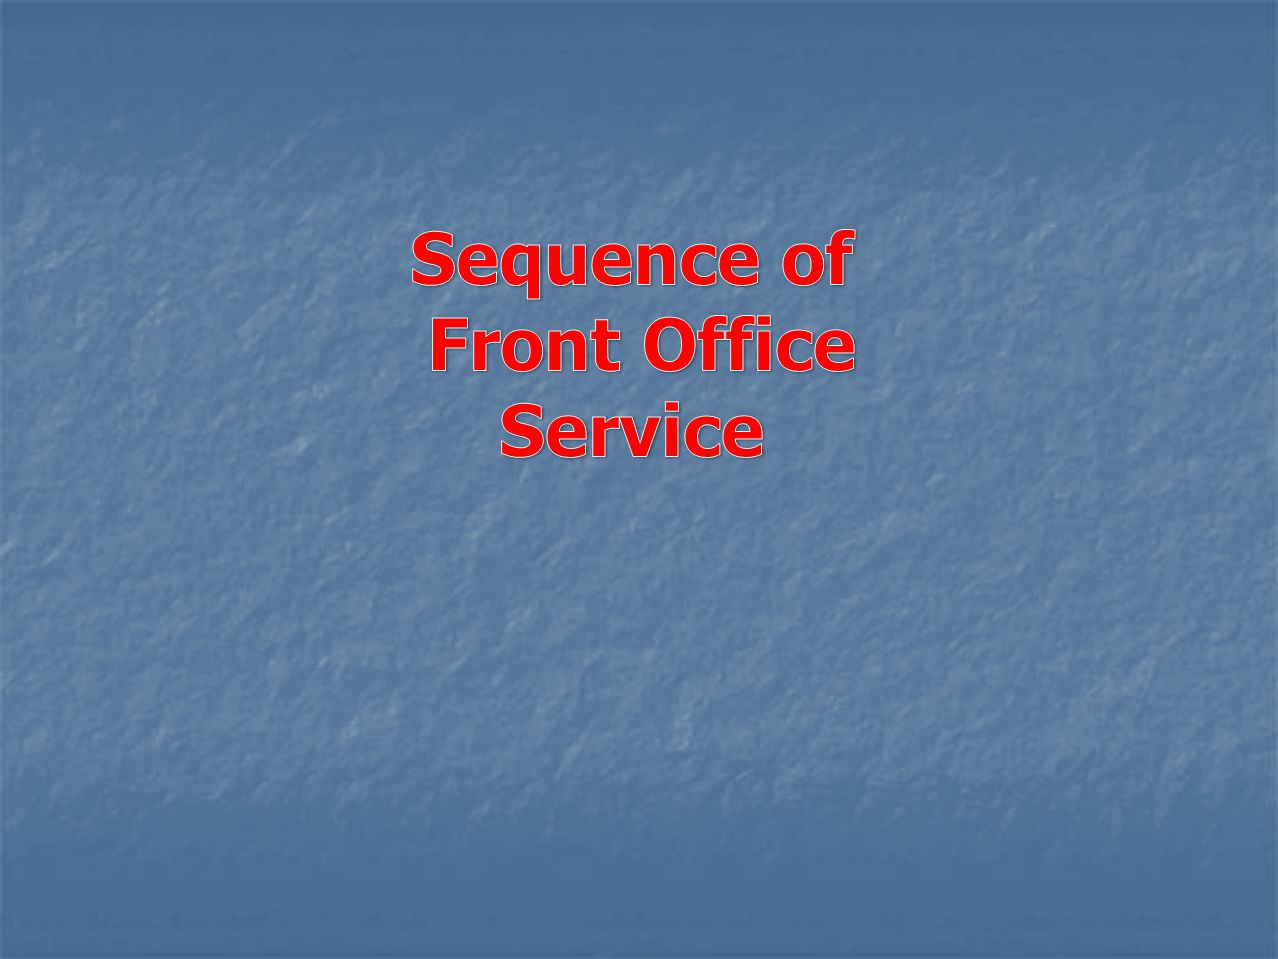 Sequence of Front Office Service